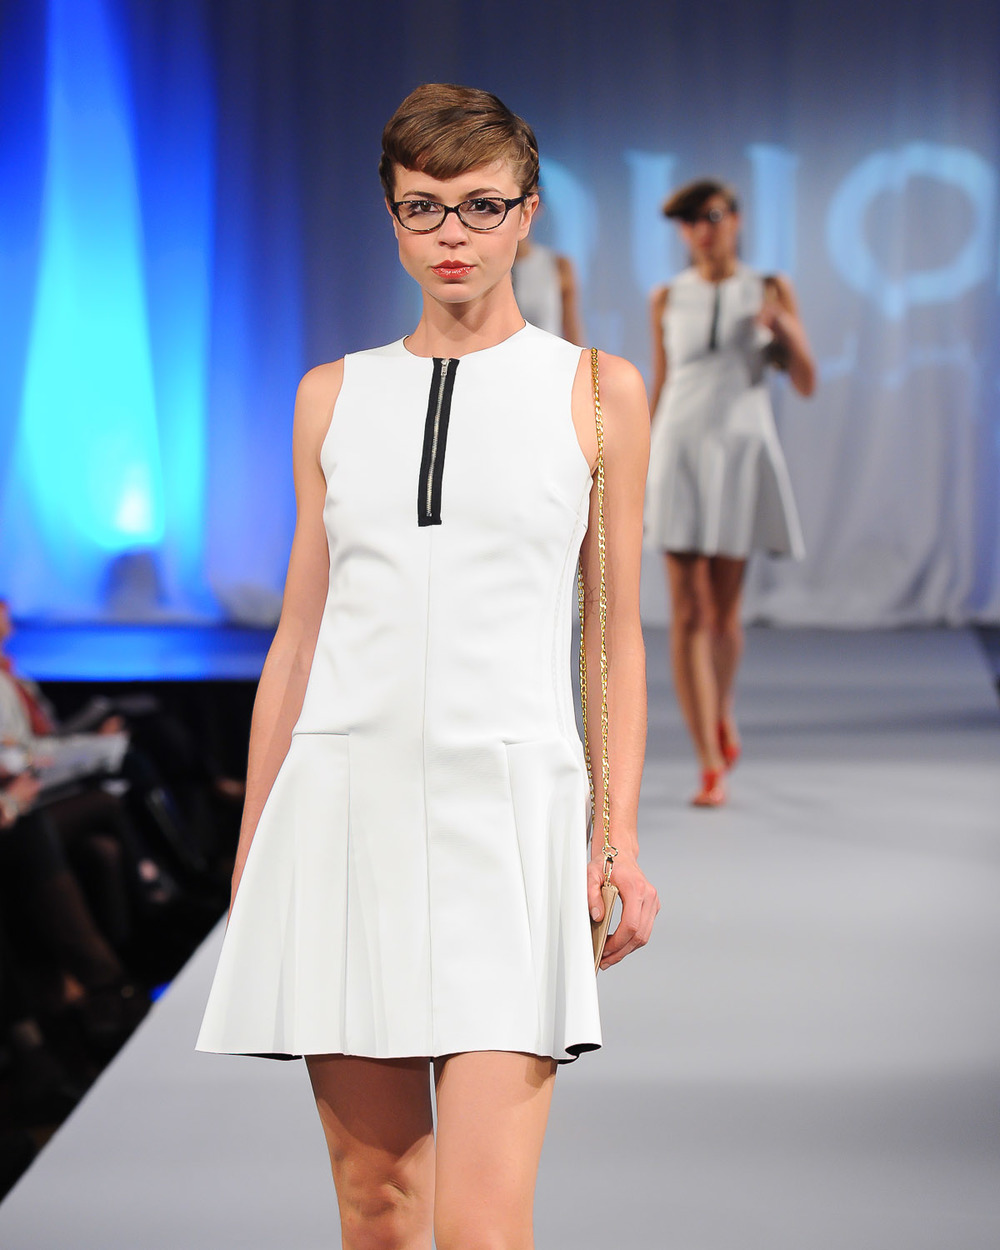 bath-in-fashion-spring-summer-13.jpg